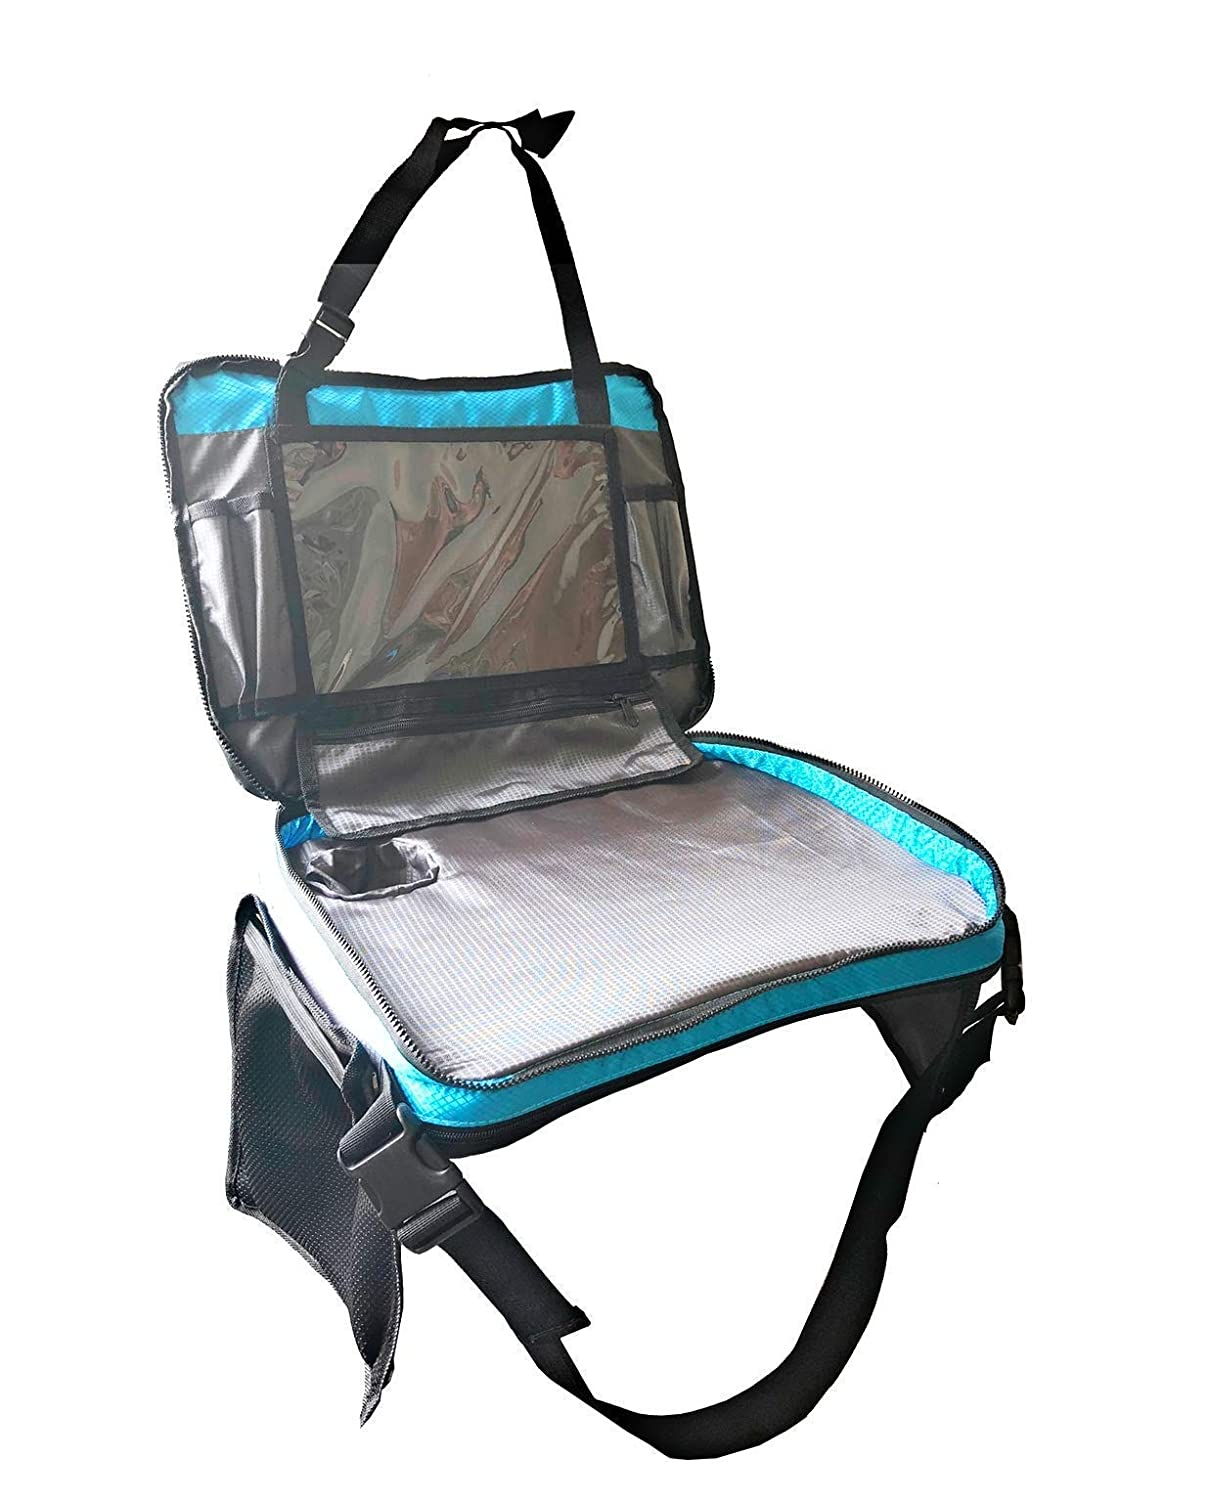 Kids Travel Tray with Versatile Detacheable Top /& Bottom Parts for Best fit Carry Bag and Large Tablet Holder for Toddlers Odorless Foam Insert Lap Table 4 in 1 Car Seat Organizer